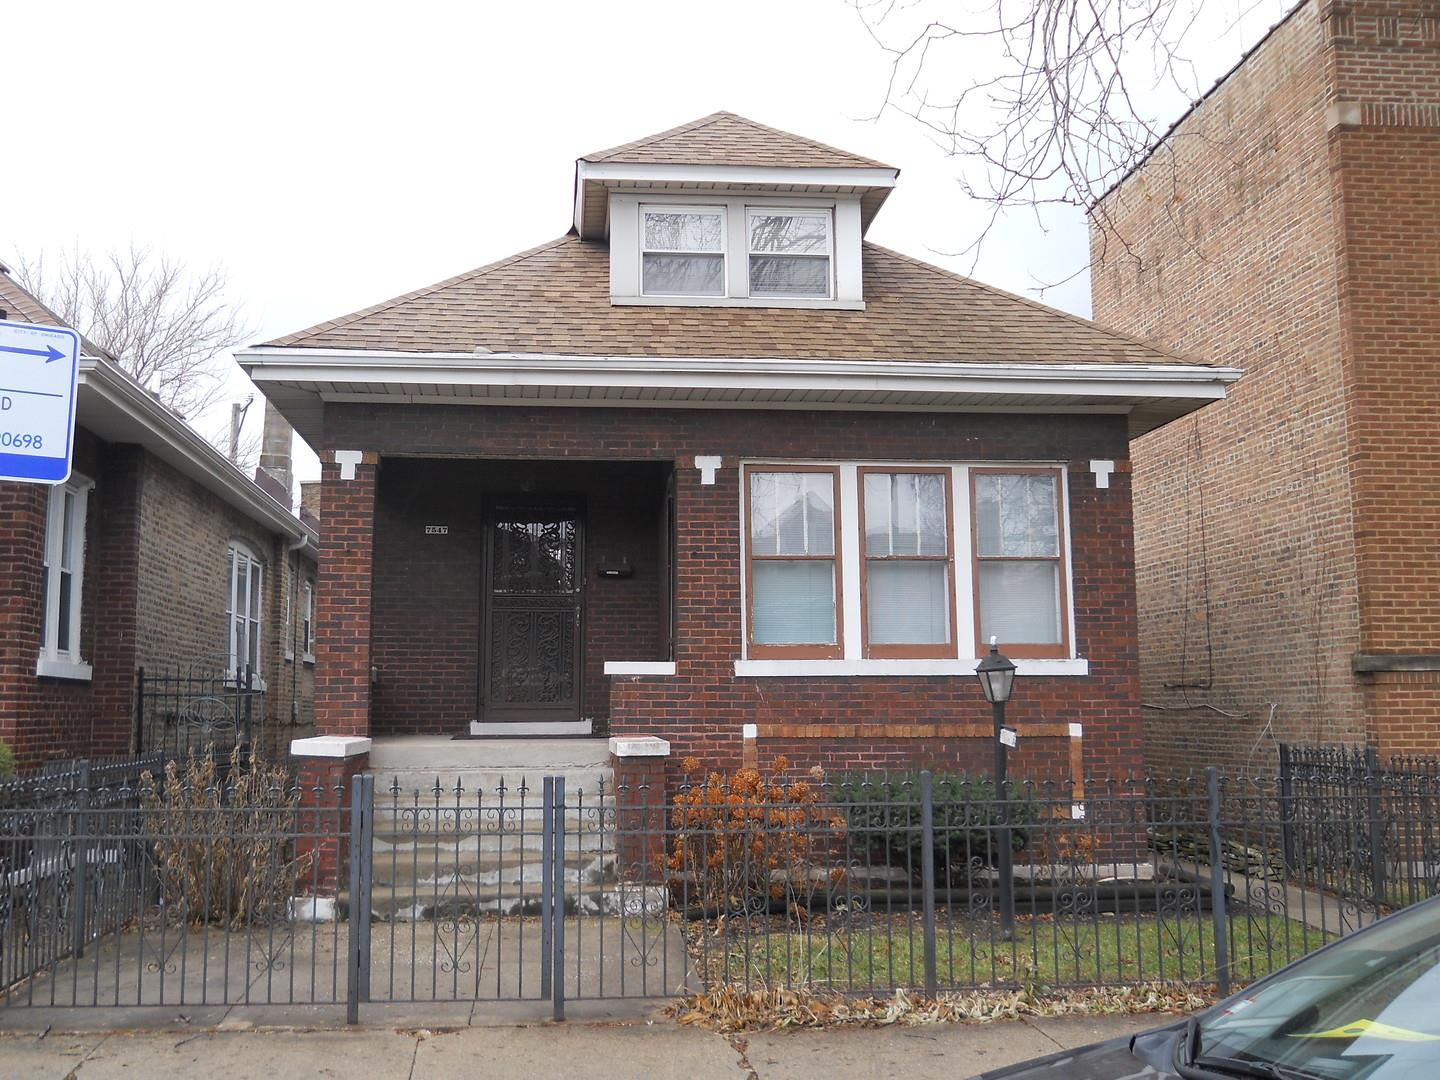 7547 S Green Street, Chicago, IL 60620 - #: 10842063